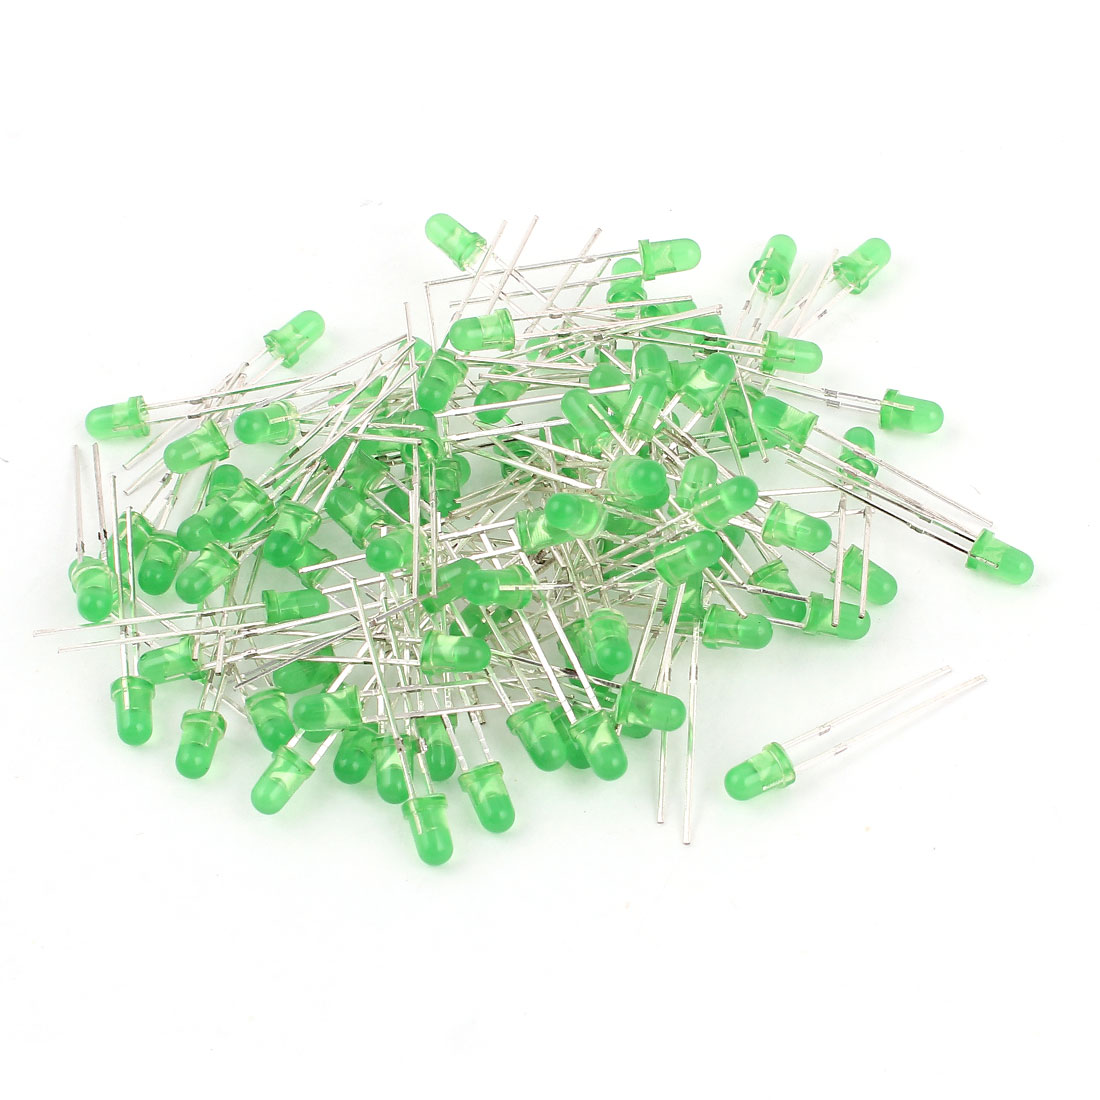 100 Pcs 3mm Round Head LED Green Light Emitting Diodes